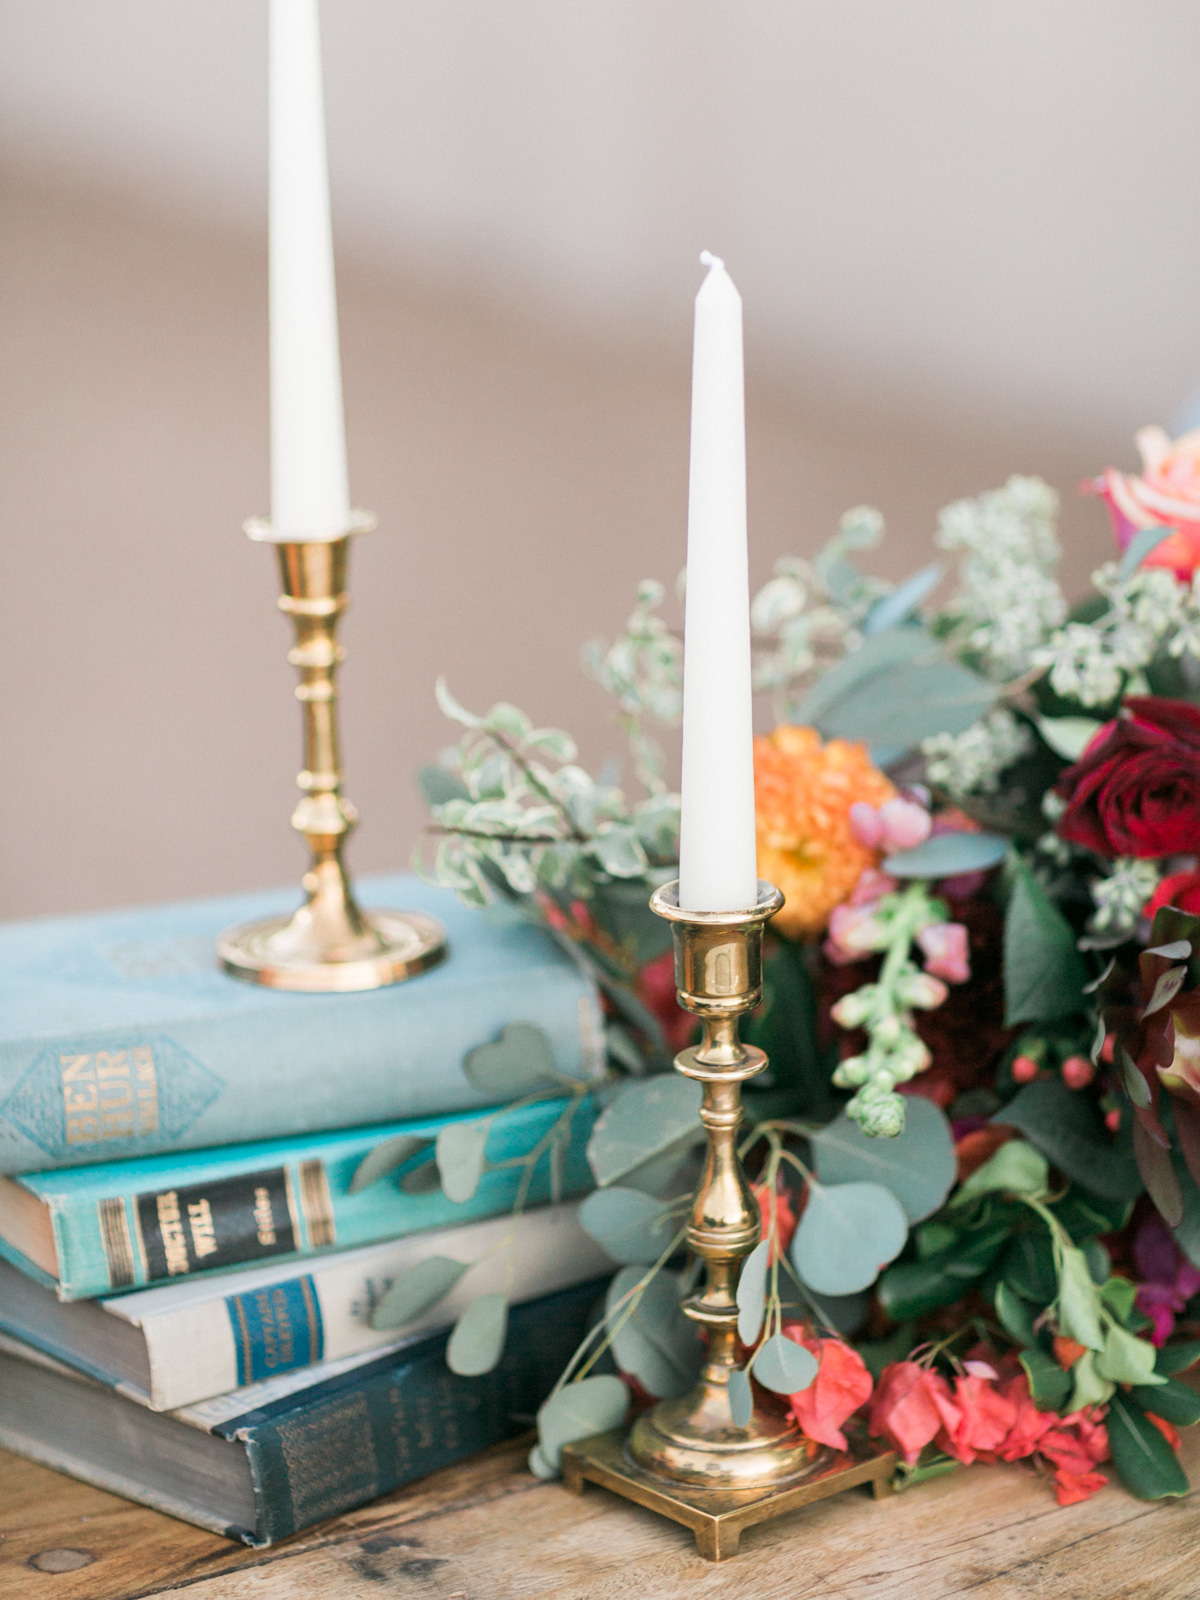 Charming wedding details, vintage books and brass candlesticks with draping greenery and florals